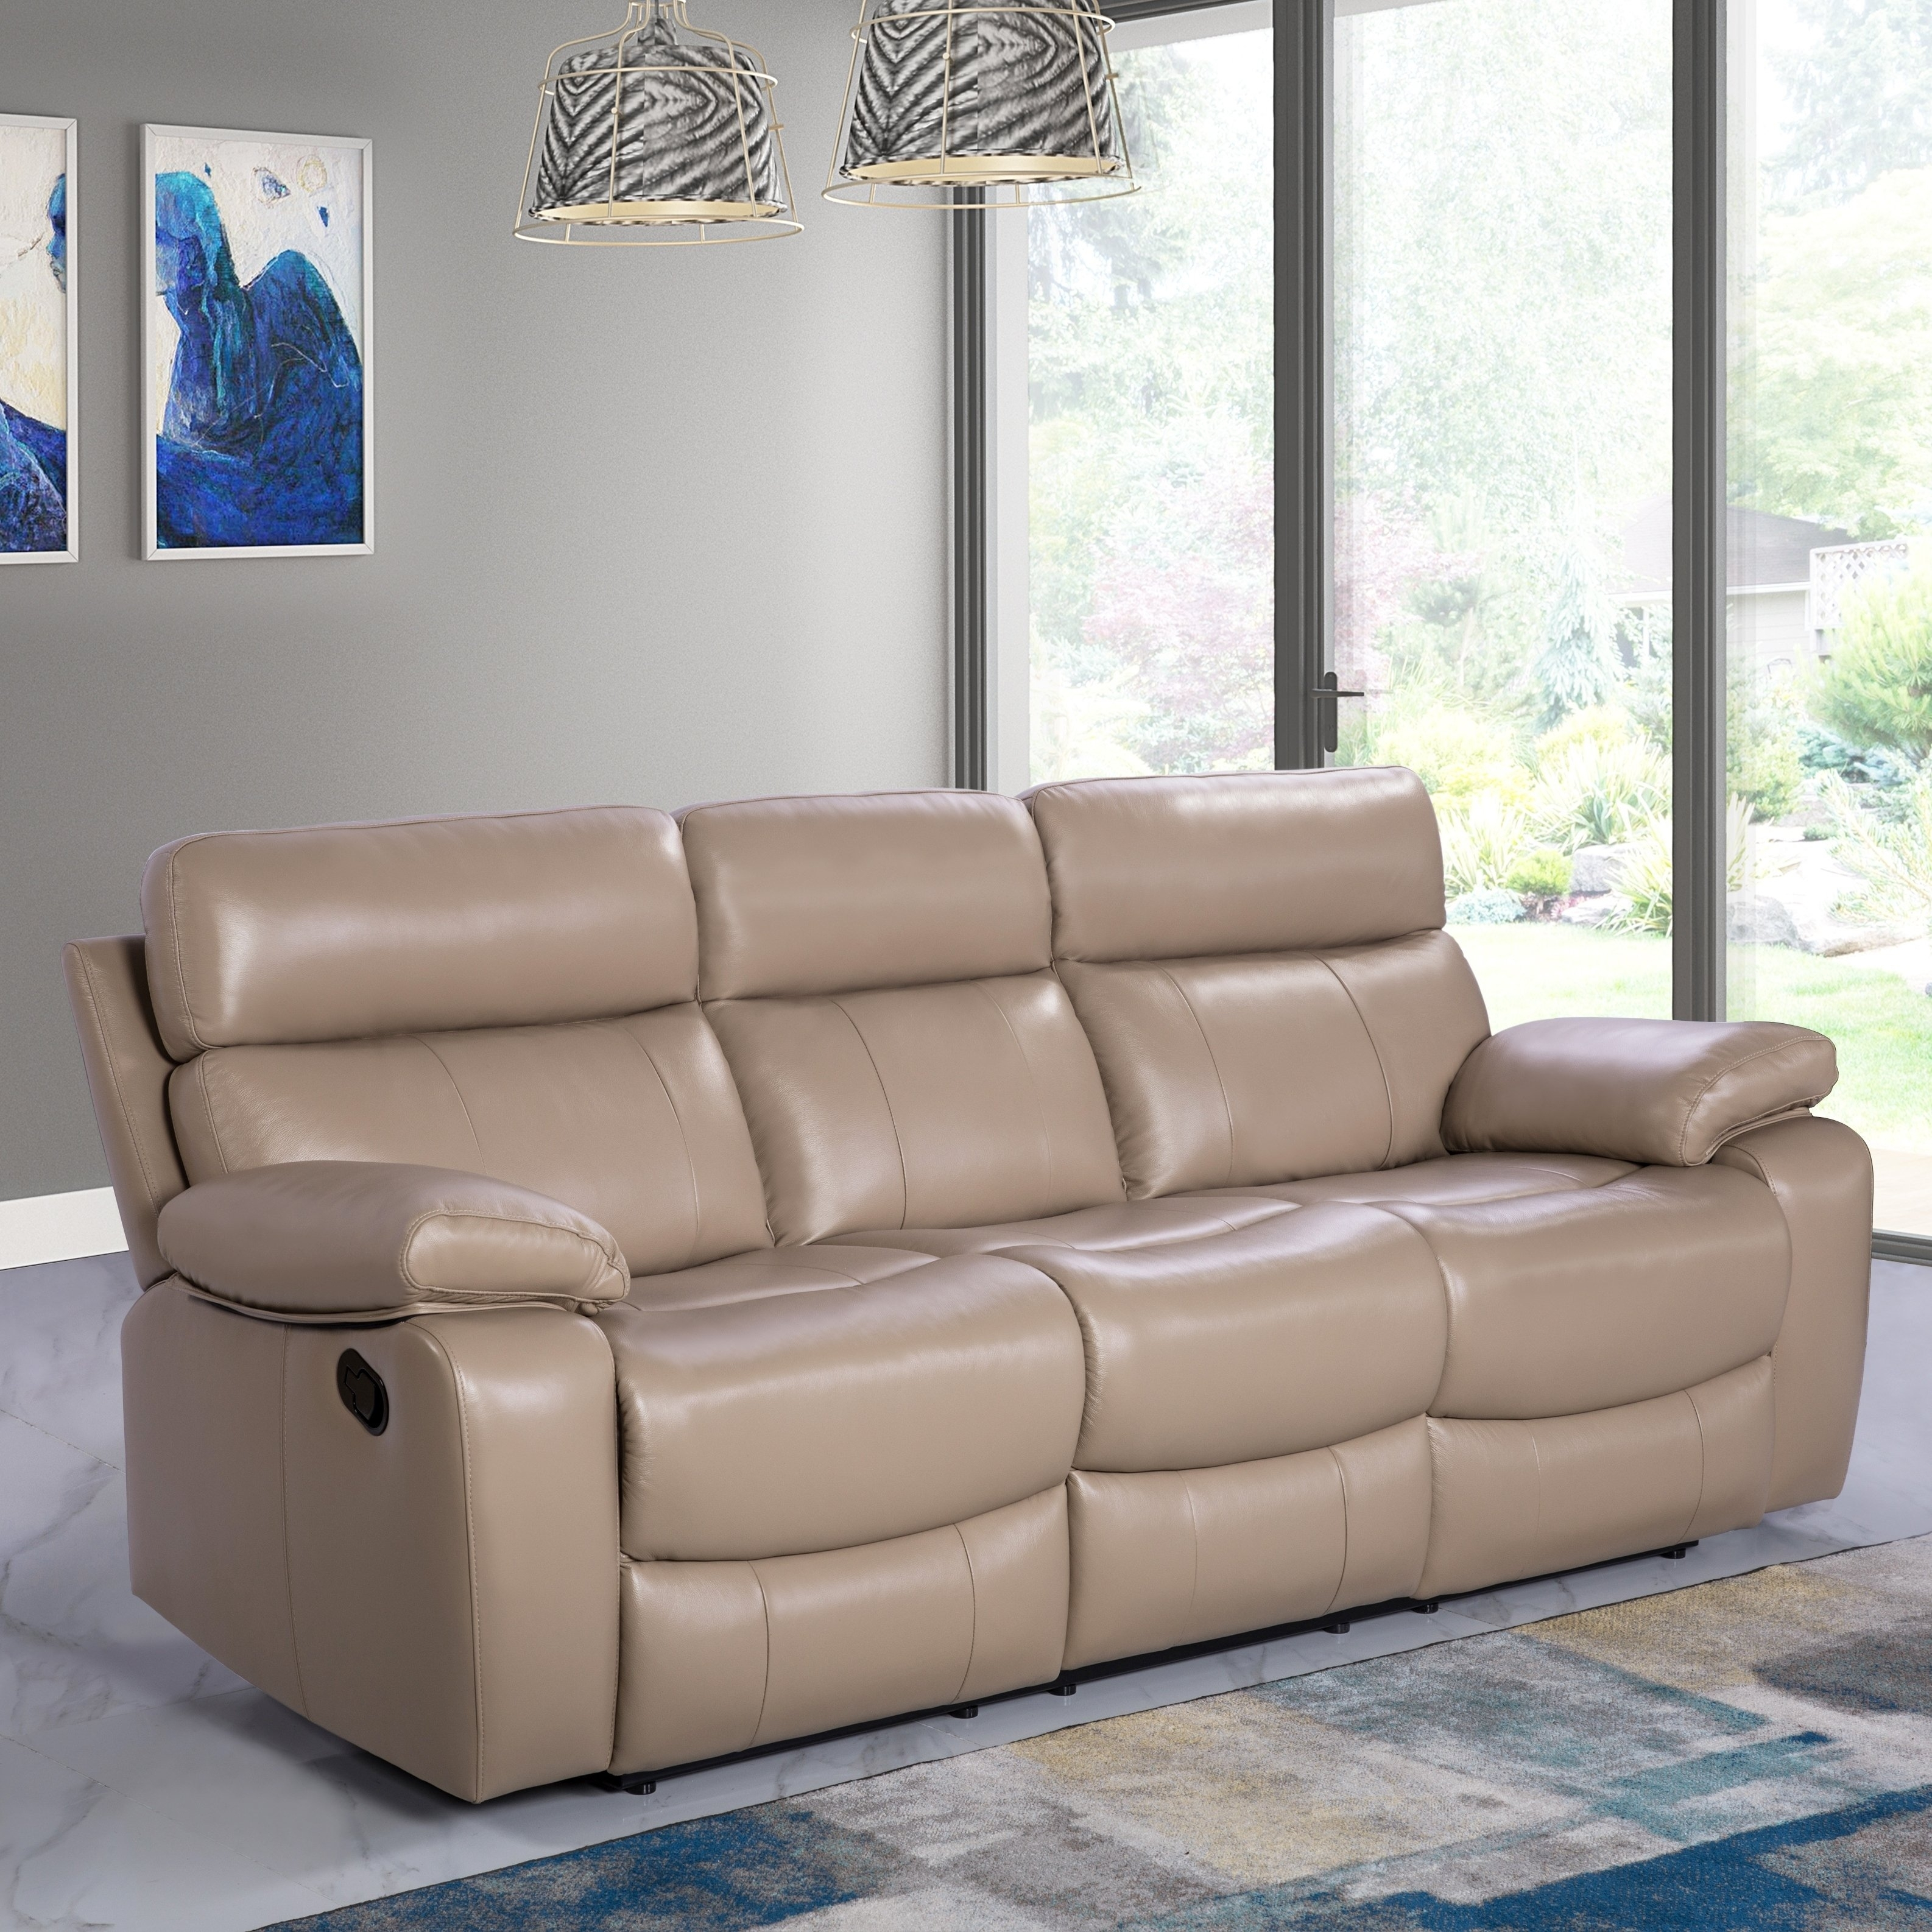 Beige Leather Reclining Sofa | Baci Living Room Pertaining To Clyde Saddle 3 Piece Power Reclining Sectionals With Power Headrest & Usb (View 14 of 25)